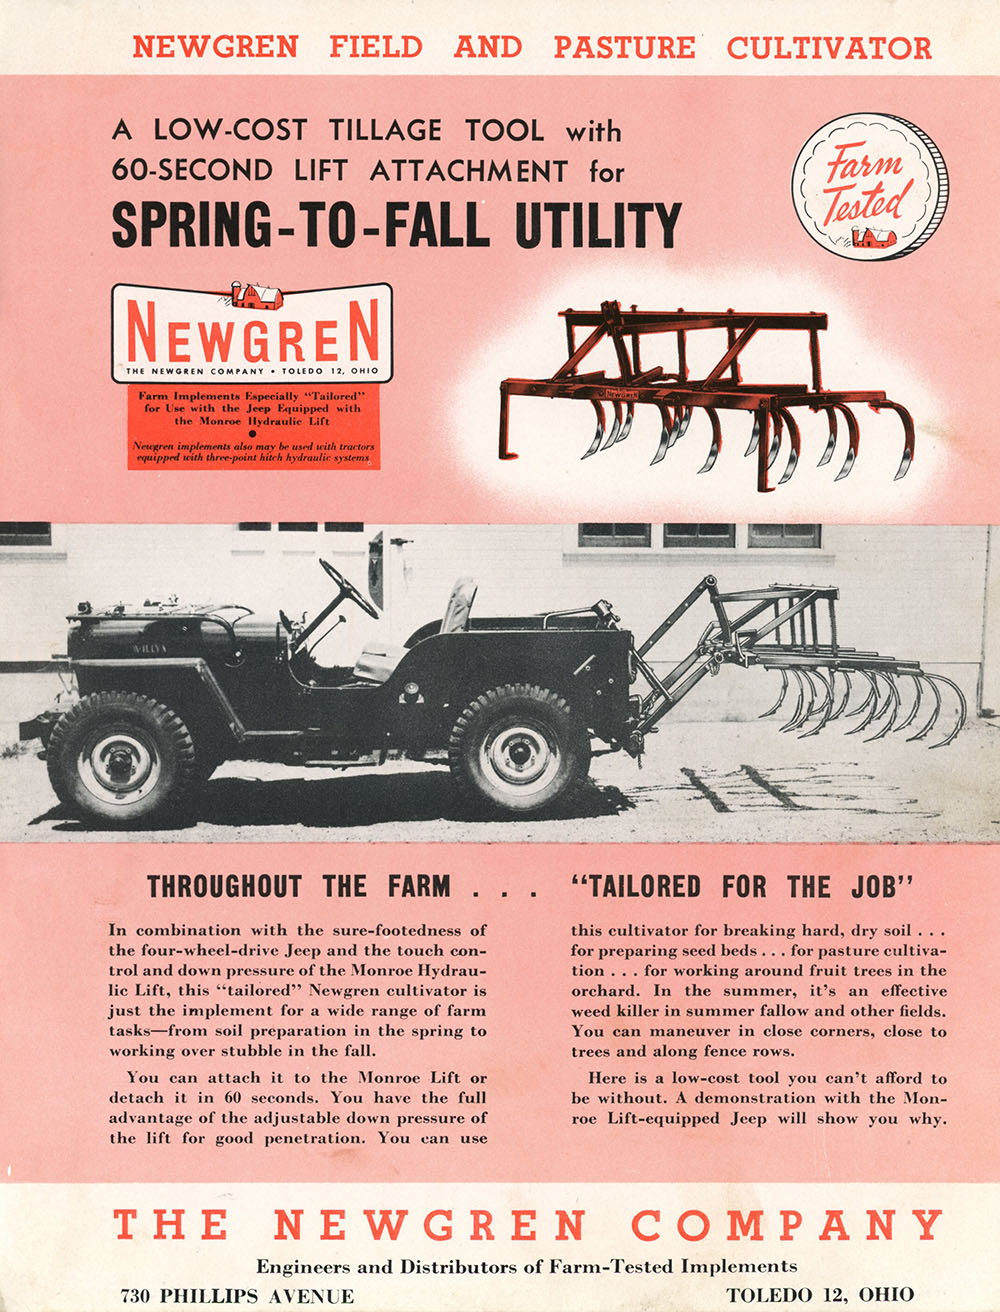 newgren-from-N-168-field-and-pasture-cultivator1-lores